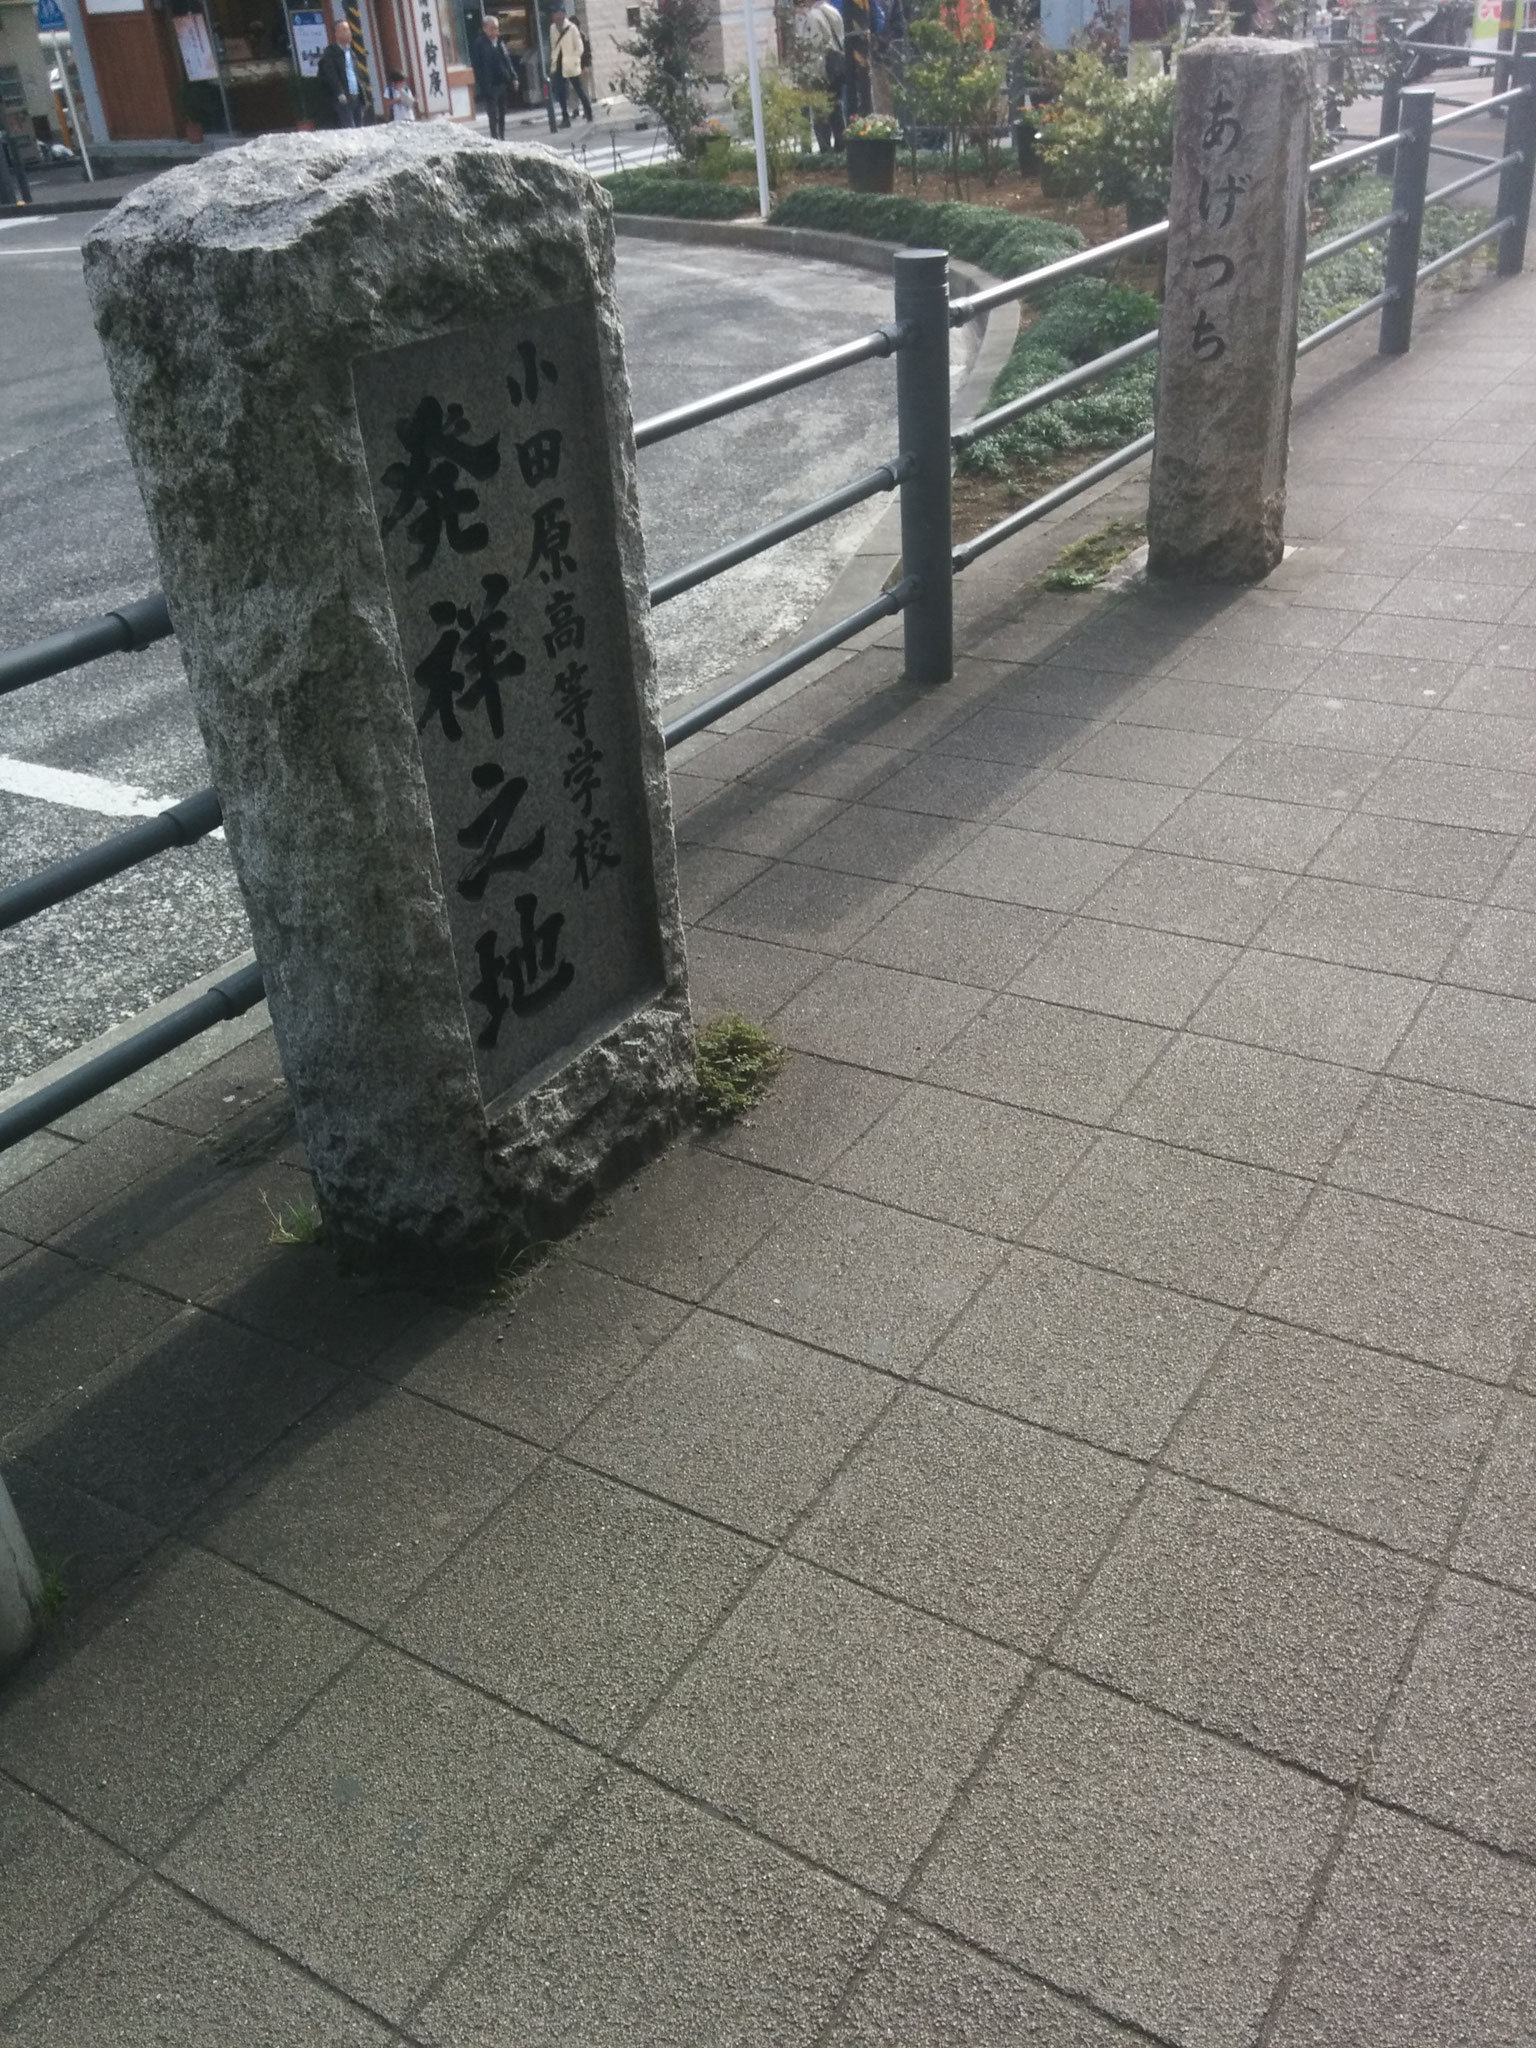 7 Odawara (stone indicates where the castle area ended back in the days)